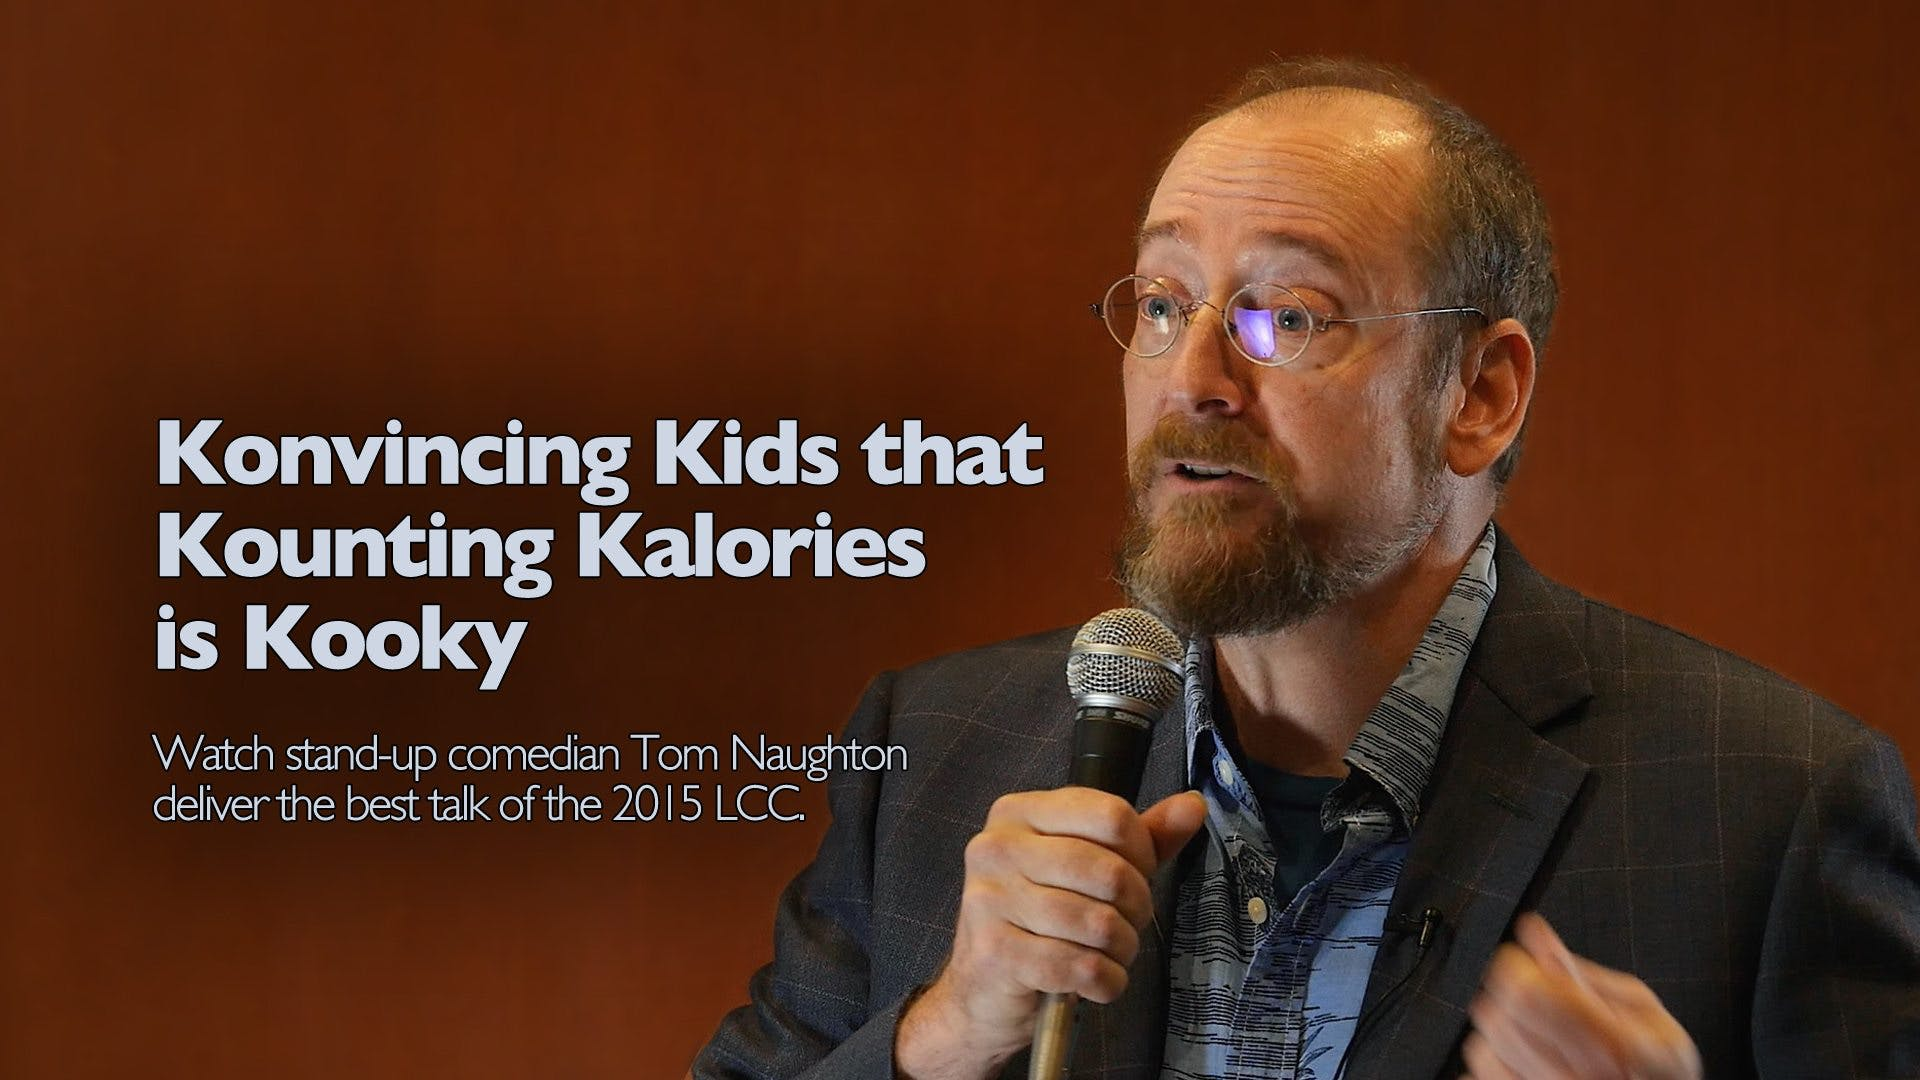 Koncincing Kids That Kounting Kalories Is Kooky